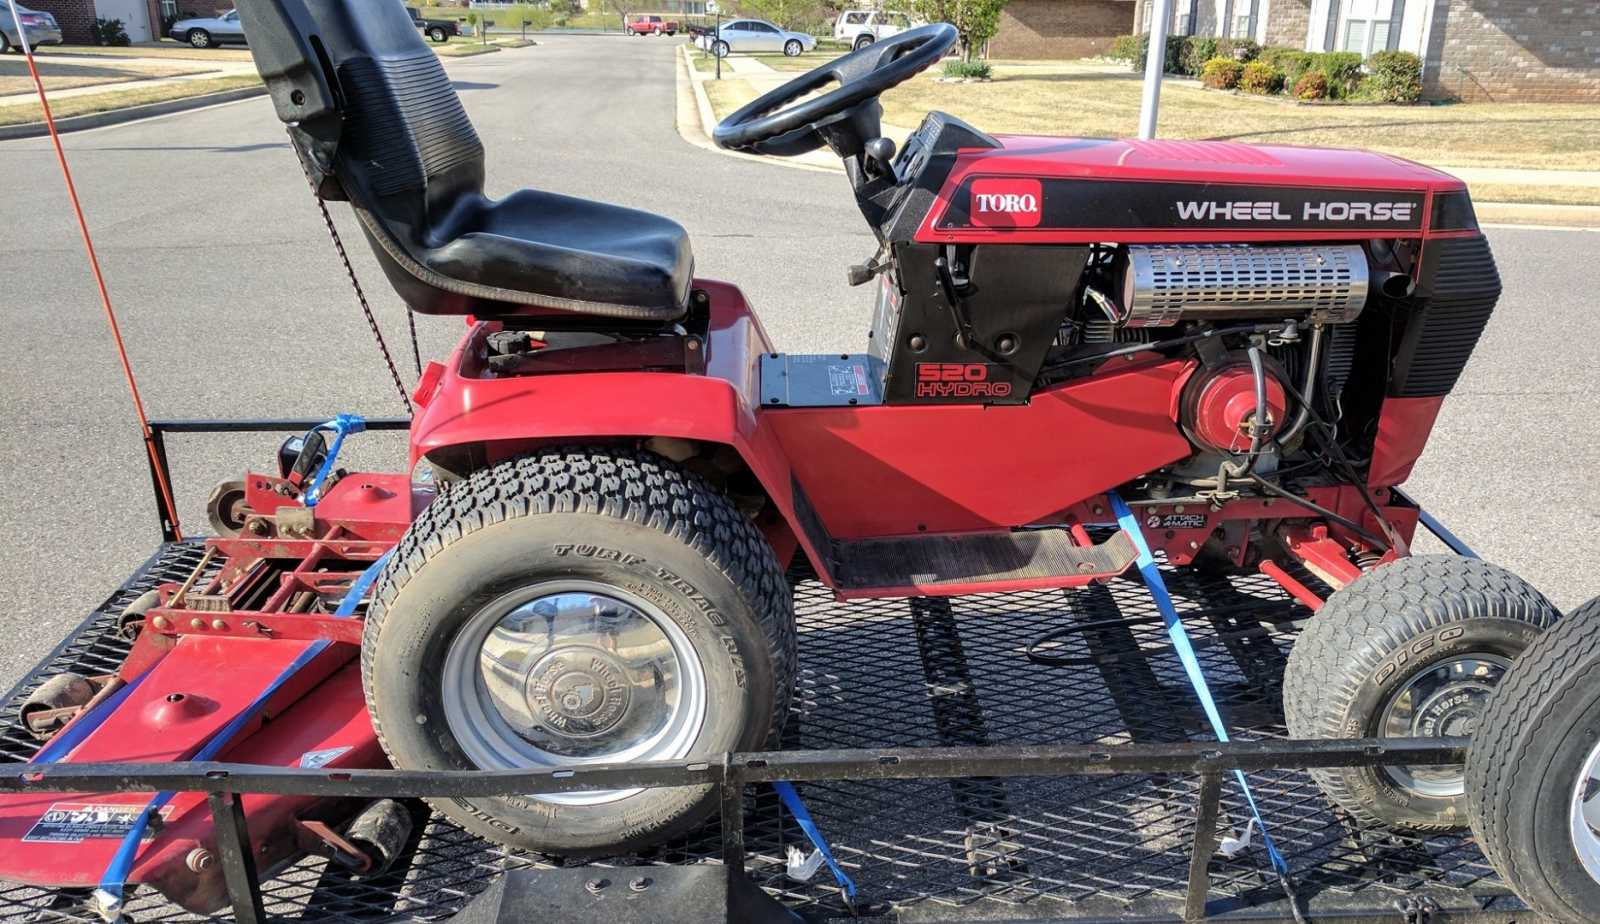 416 8 replacement otions and will a 42 deck fit on 520h whs forum rh wheelhorsestables com Wheel Horse Shop Manual toro wheel horse 416 h manual